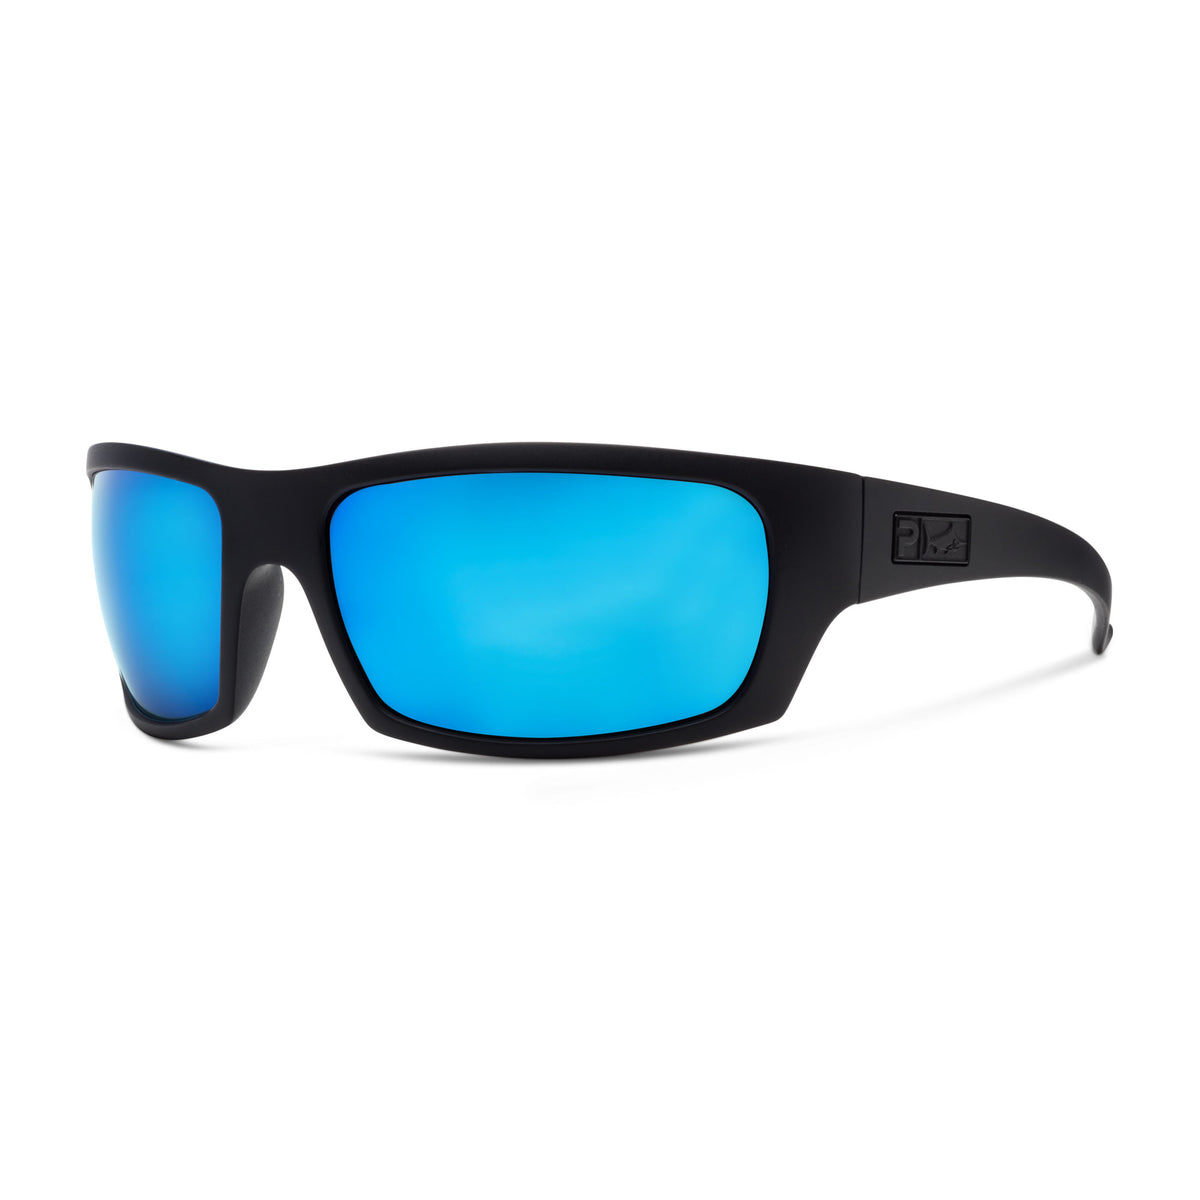 The Mack - Polarized Mineral Glass™ Big Image - 4